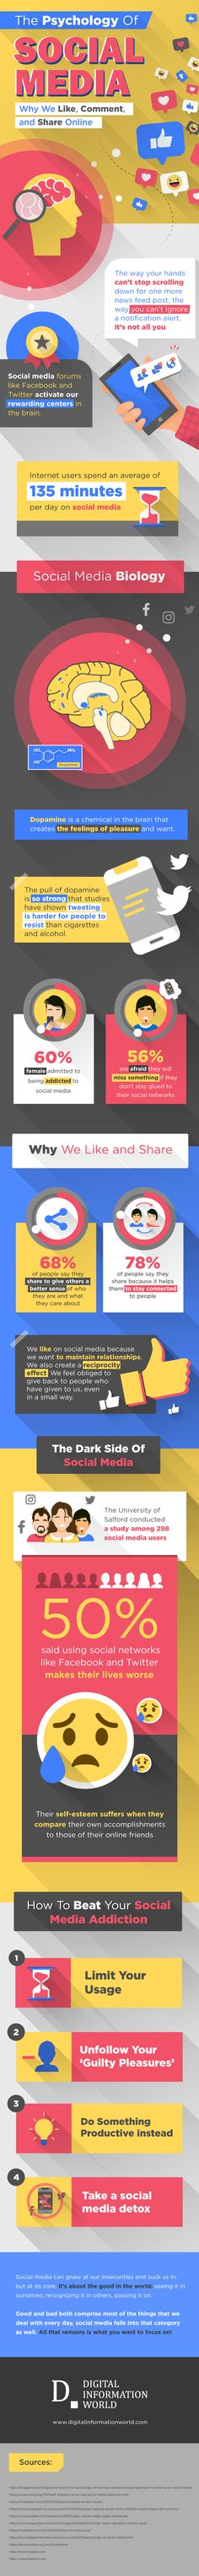 Social media psychology: why we share, like and comment online [infographic] Social Networks, Social Media Marketing, Content Marketing, Blockchain, Media Psychology, Psychology Online, Visualisation, Marketing Digital, Share Online